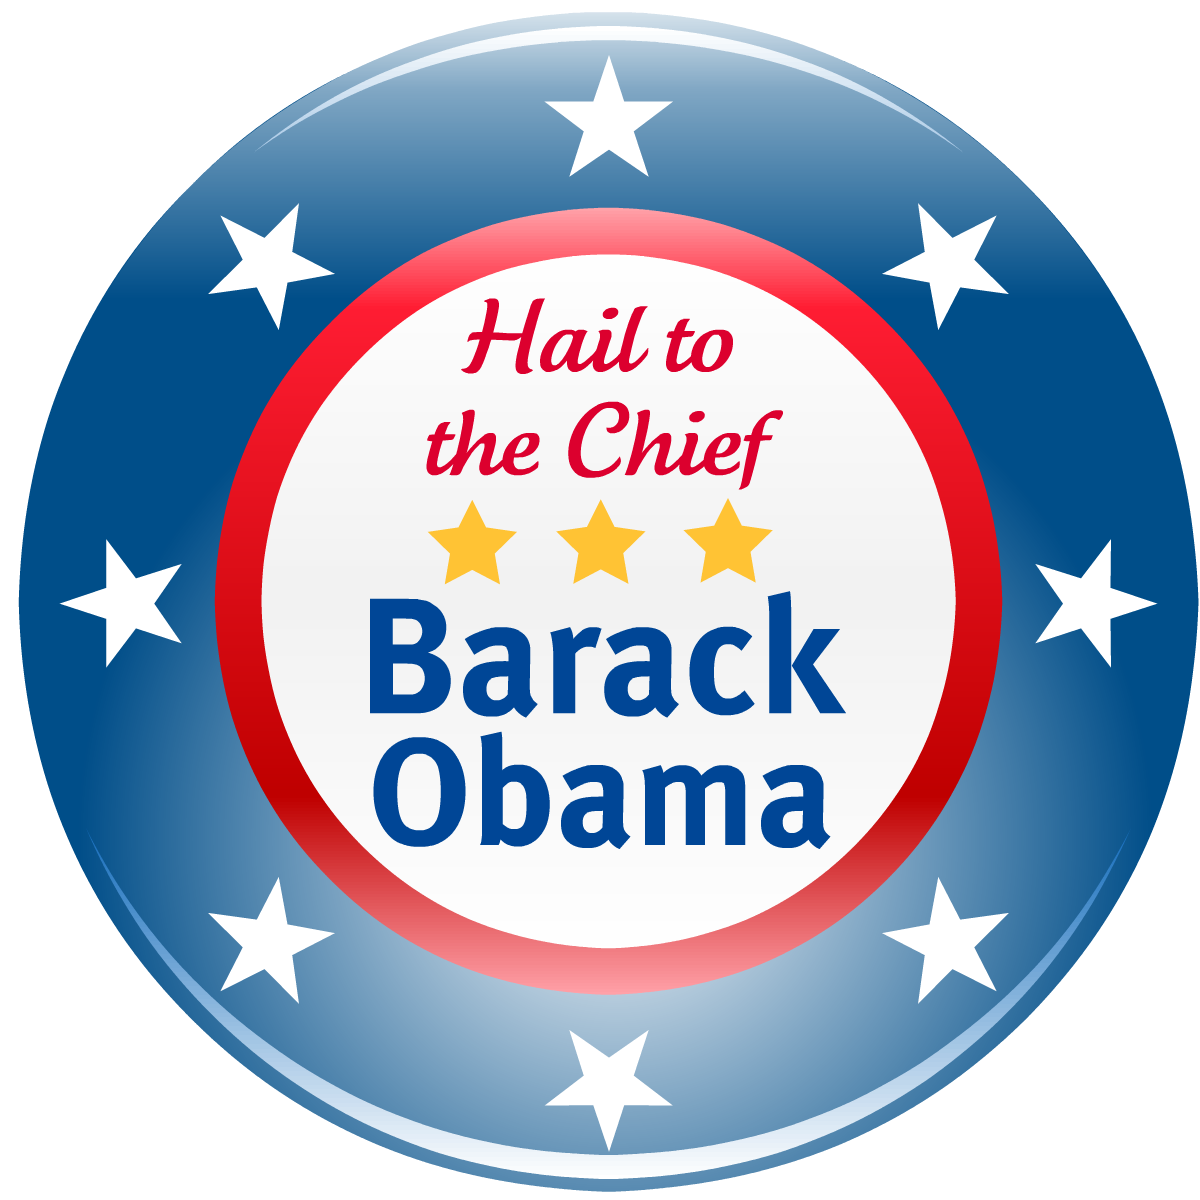 Election clip art: Barack Obama, hail to the chief